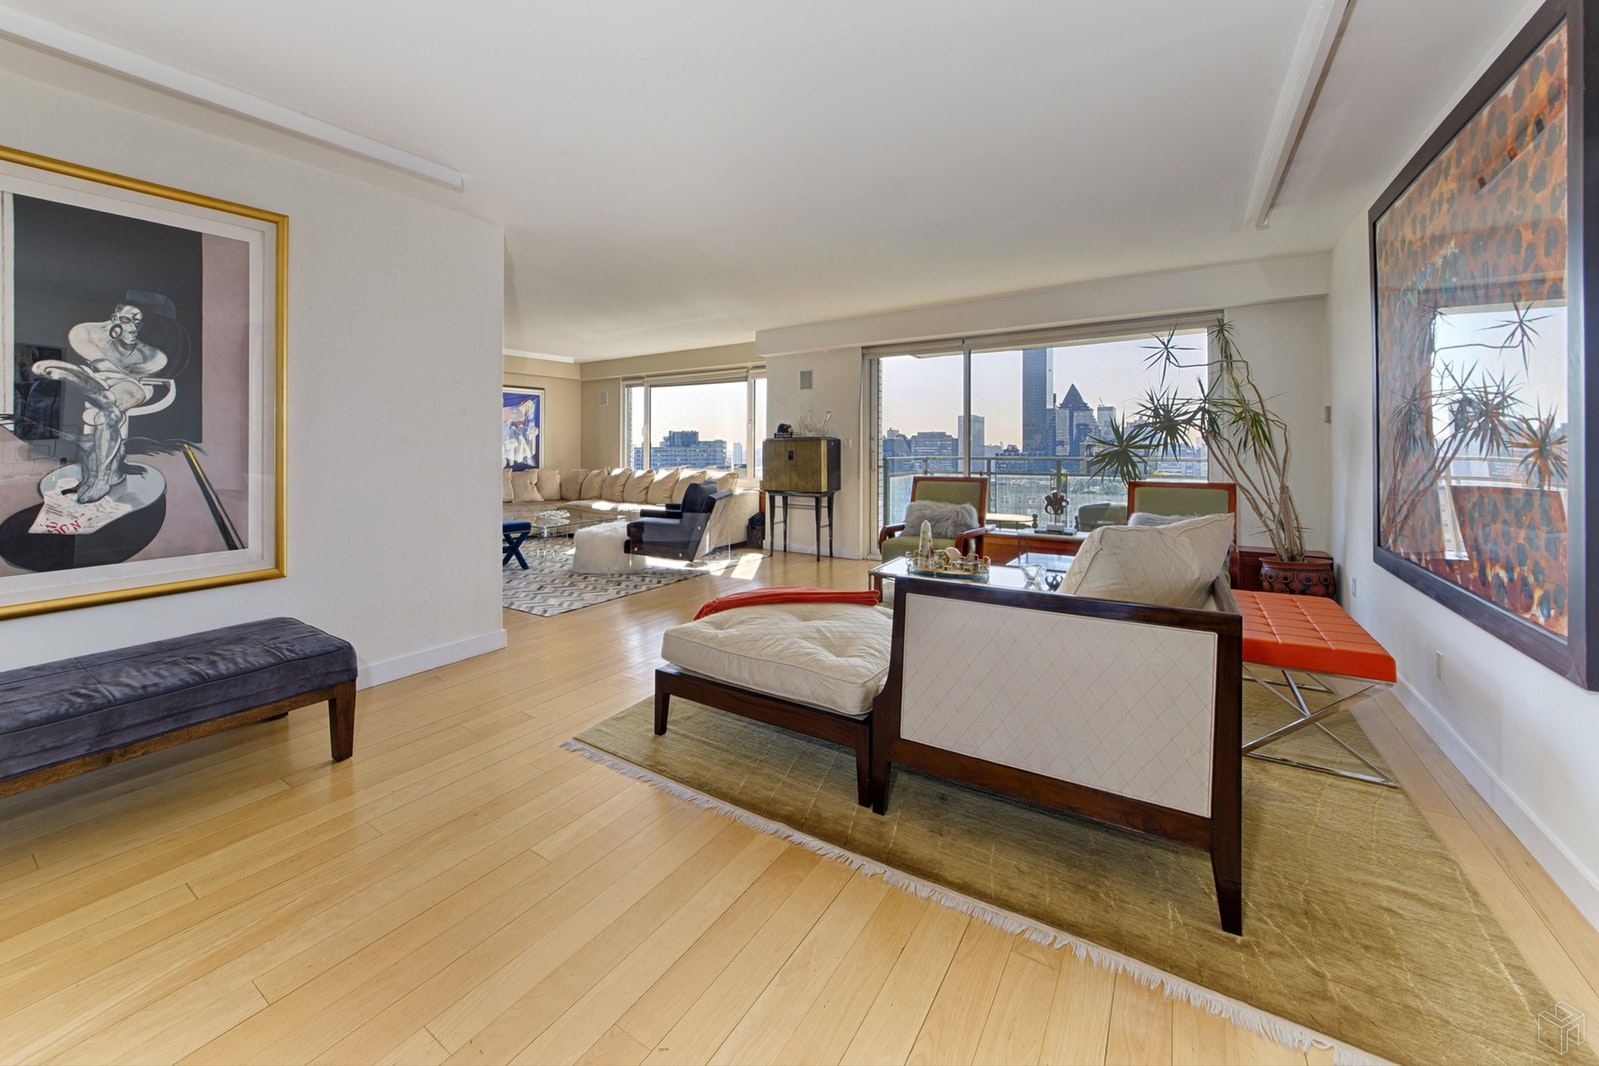 303 East 57th Street 34g, Midtown East, NYC, 10022, $2,500,000, Property For Sale, Halstead Real Estate, Photo 2